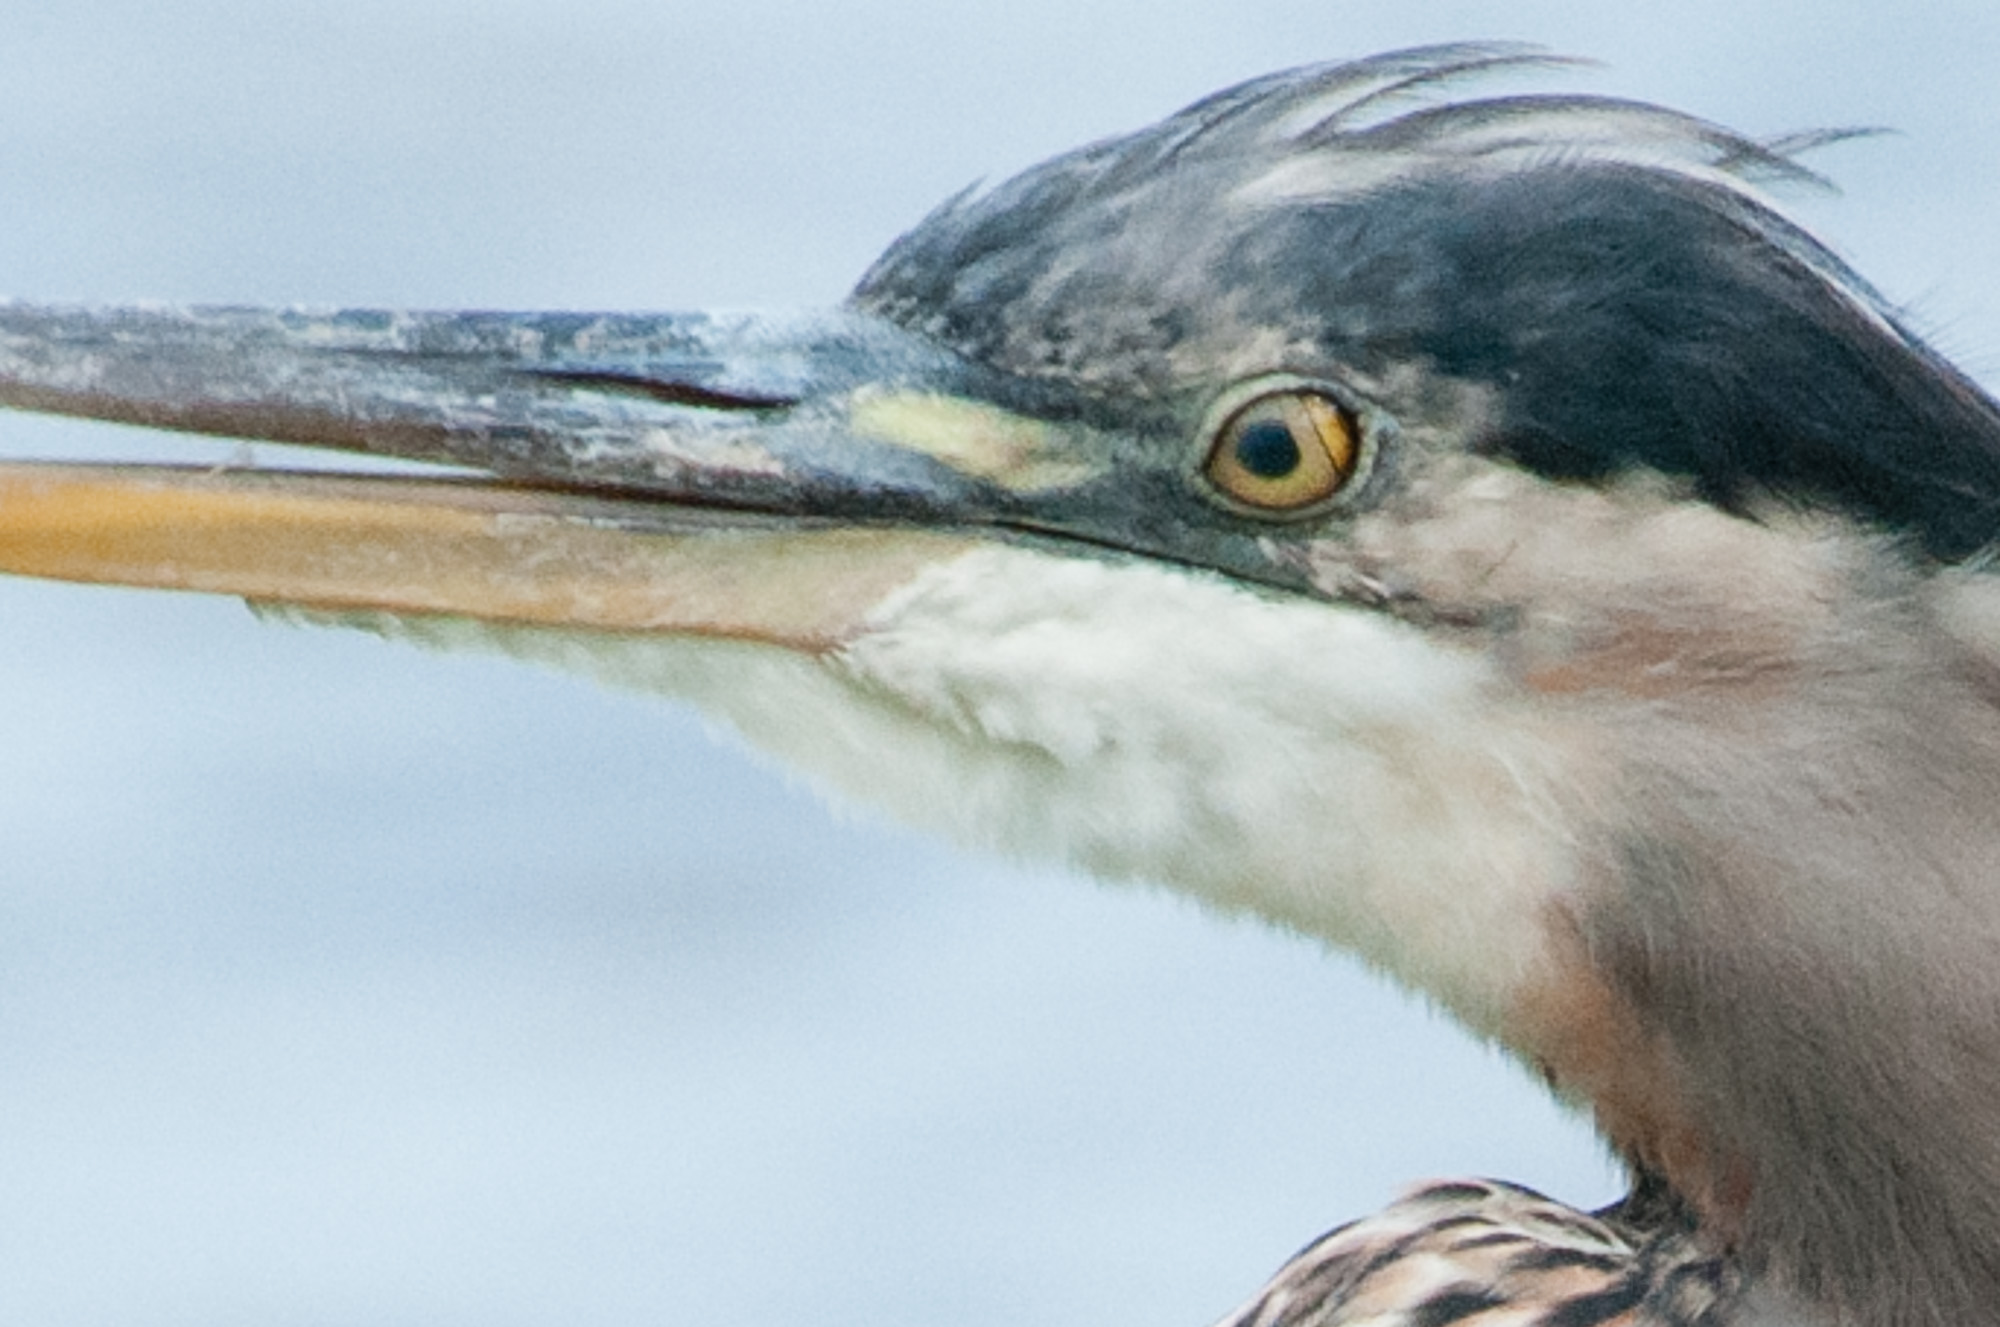 Great Blue Heron with nictitating membrane partially closed over eye.